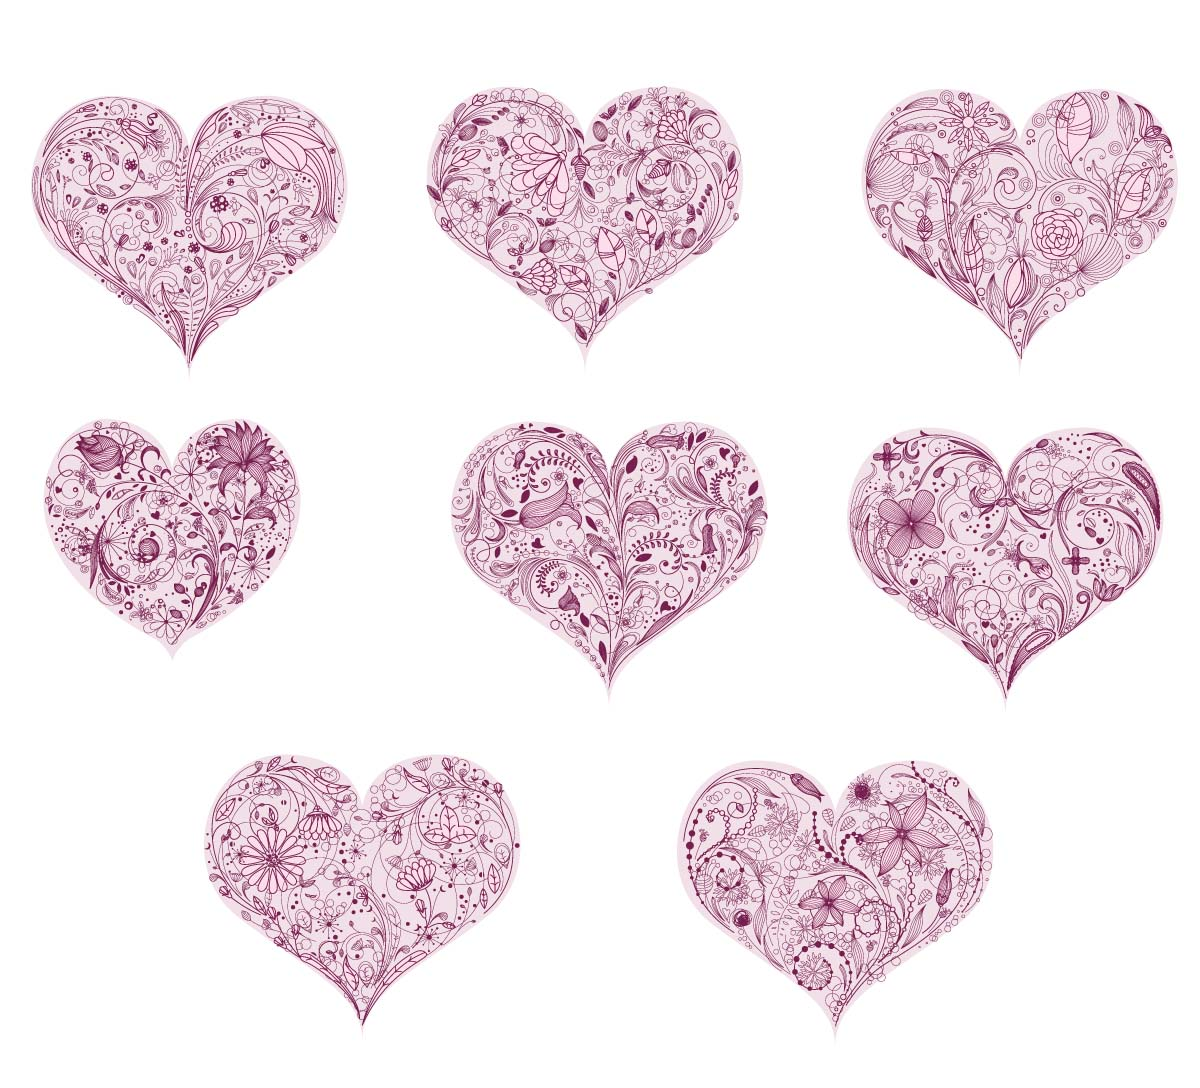 Floral ornate hearts St.Valentines Day card set vector